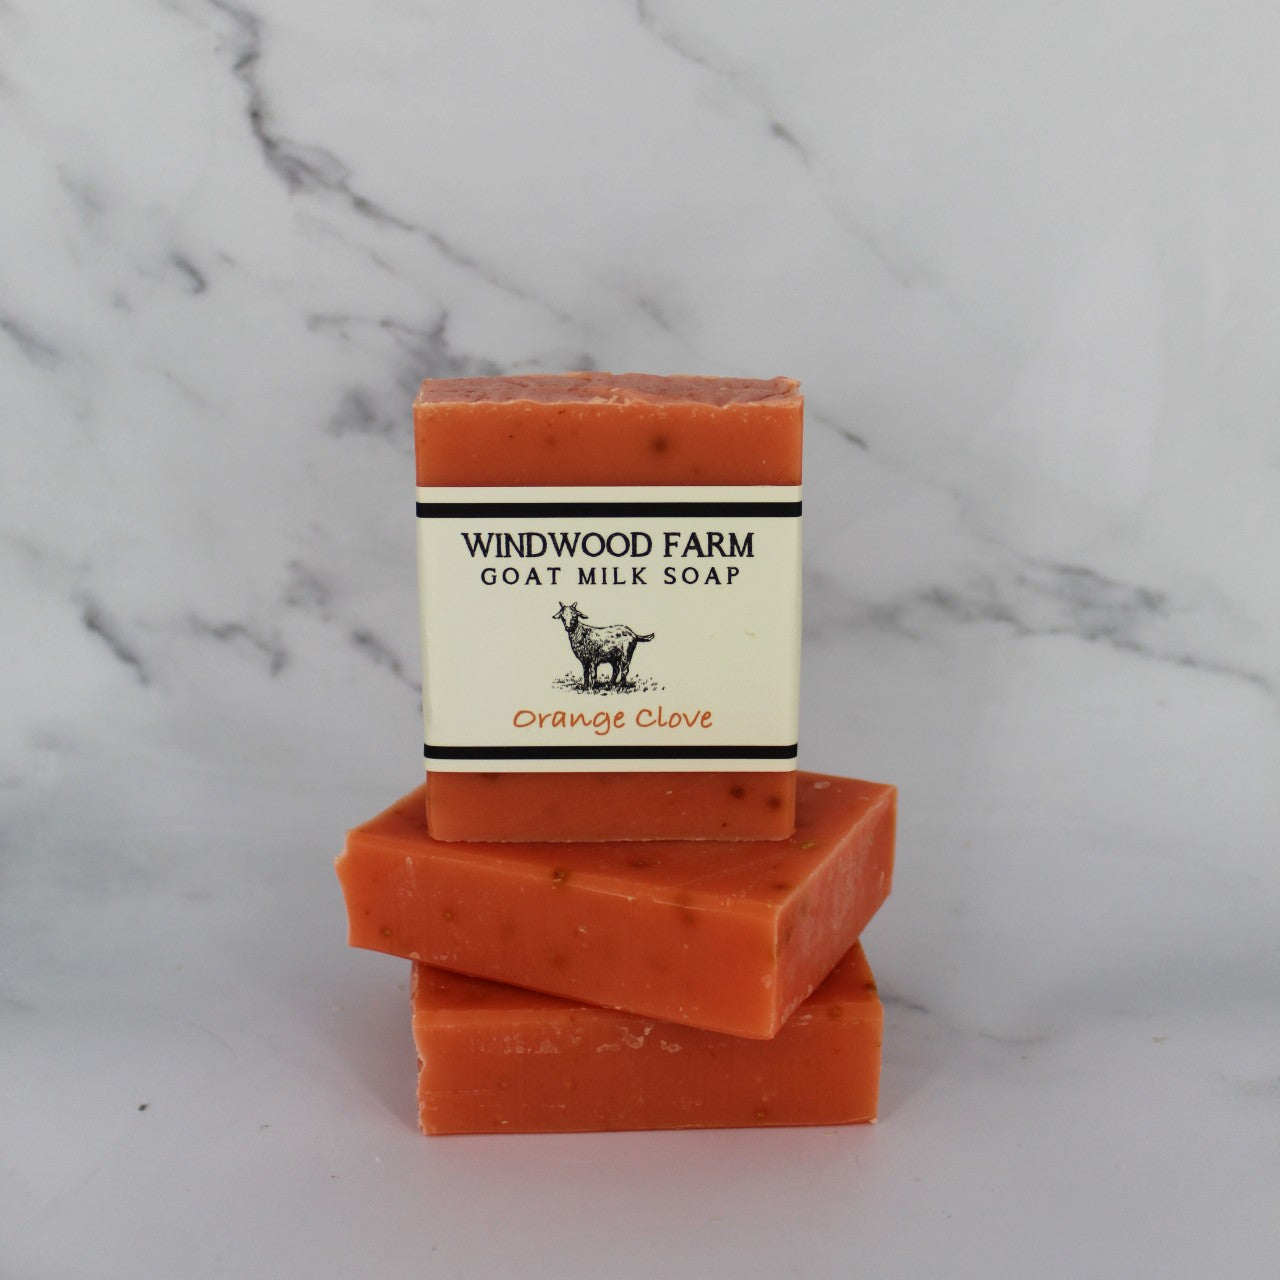 Orange Clove Goat Milk Soap